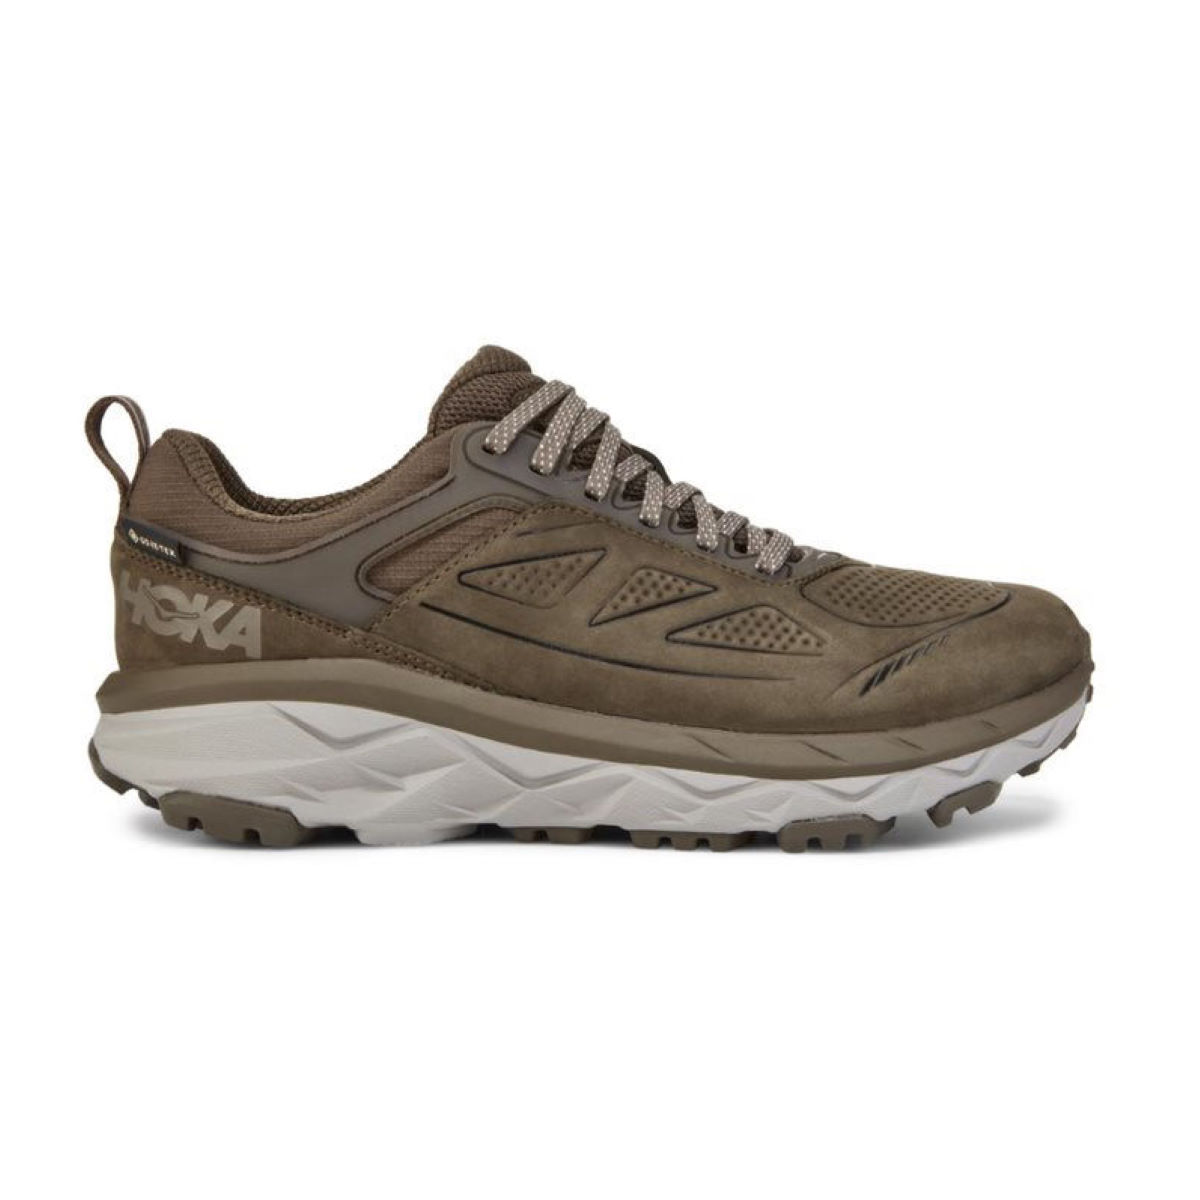 Hoka One One Womens Challenger Low Gtx Trail Running Shoes - Uk 8